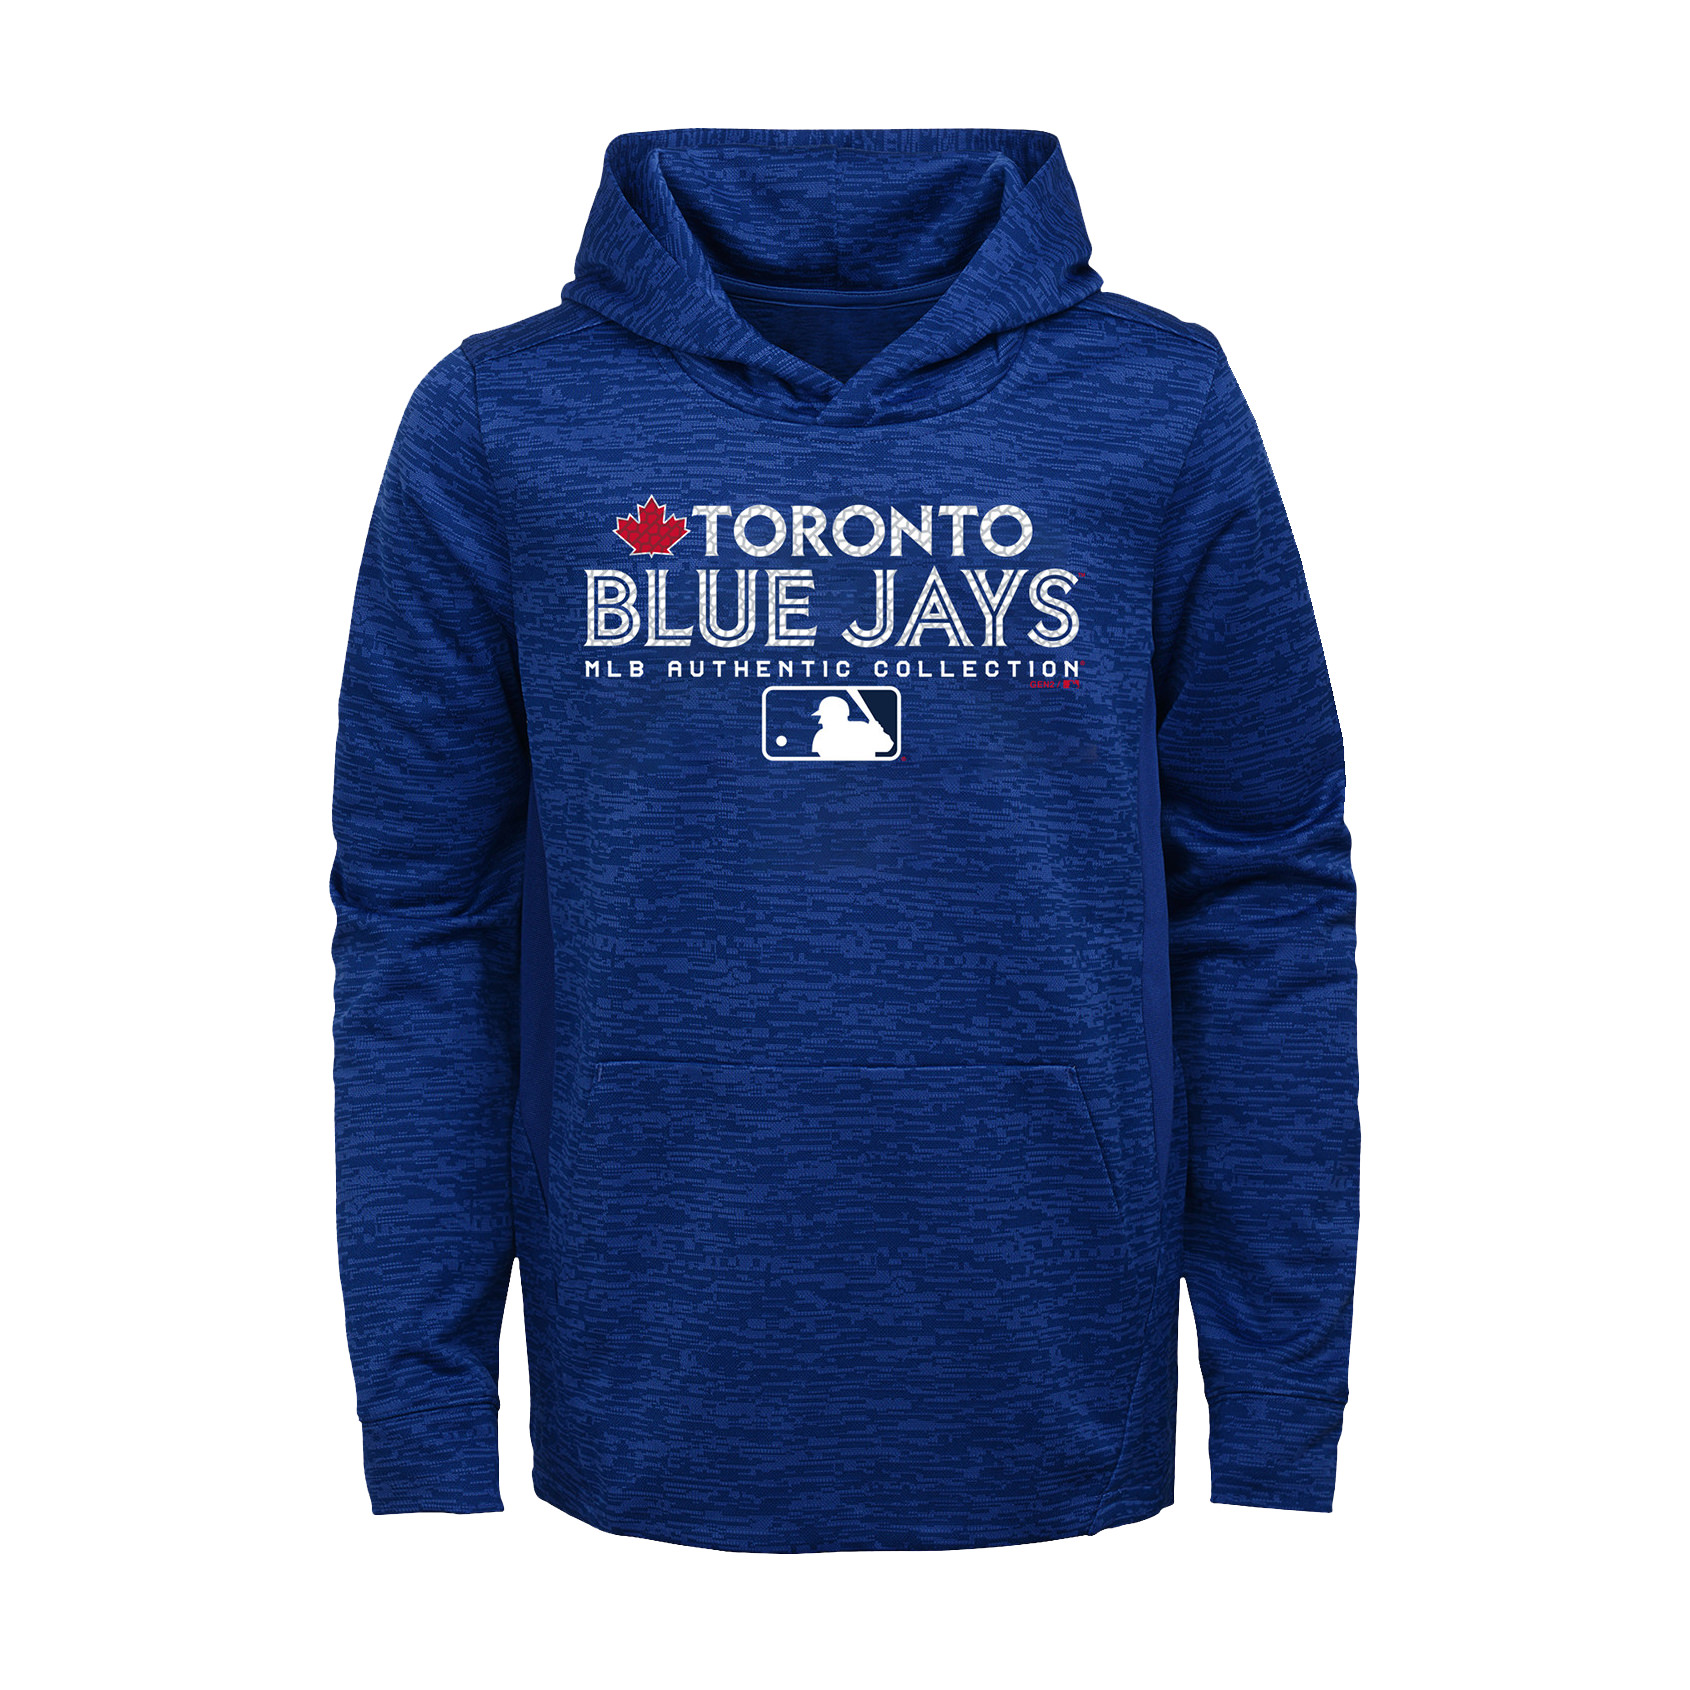 39315a10e05c3 Outerstuff Toronto Blue Jays Youth Authentic Team Drive On-Field ...